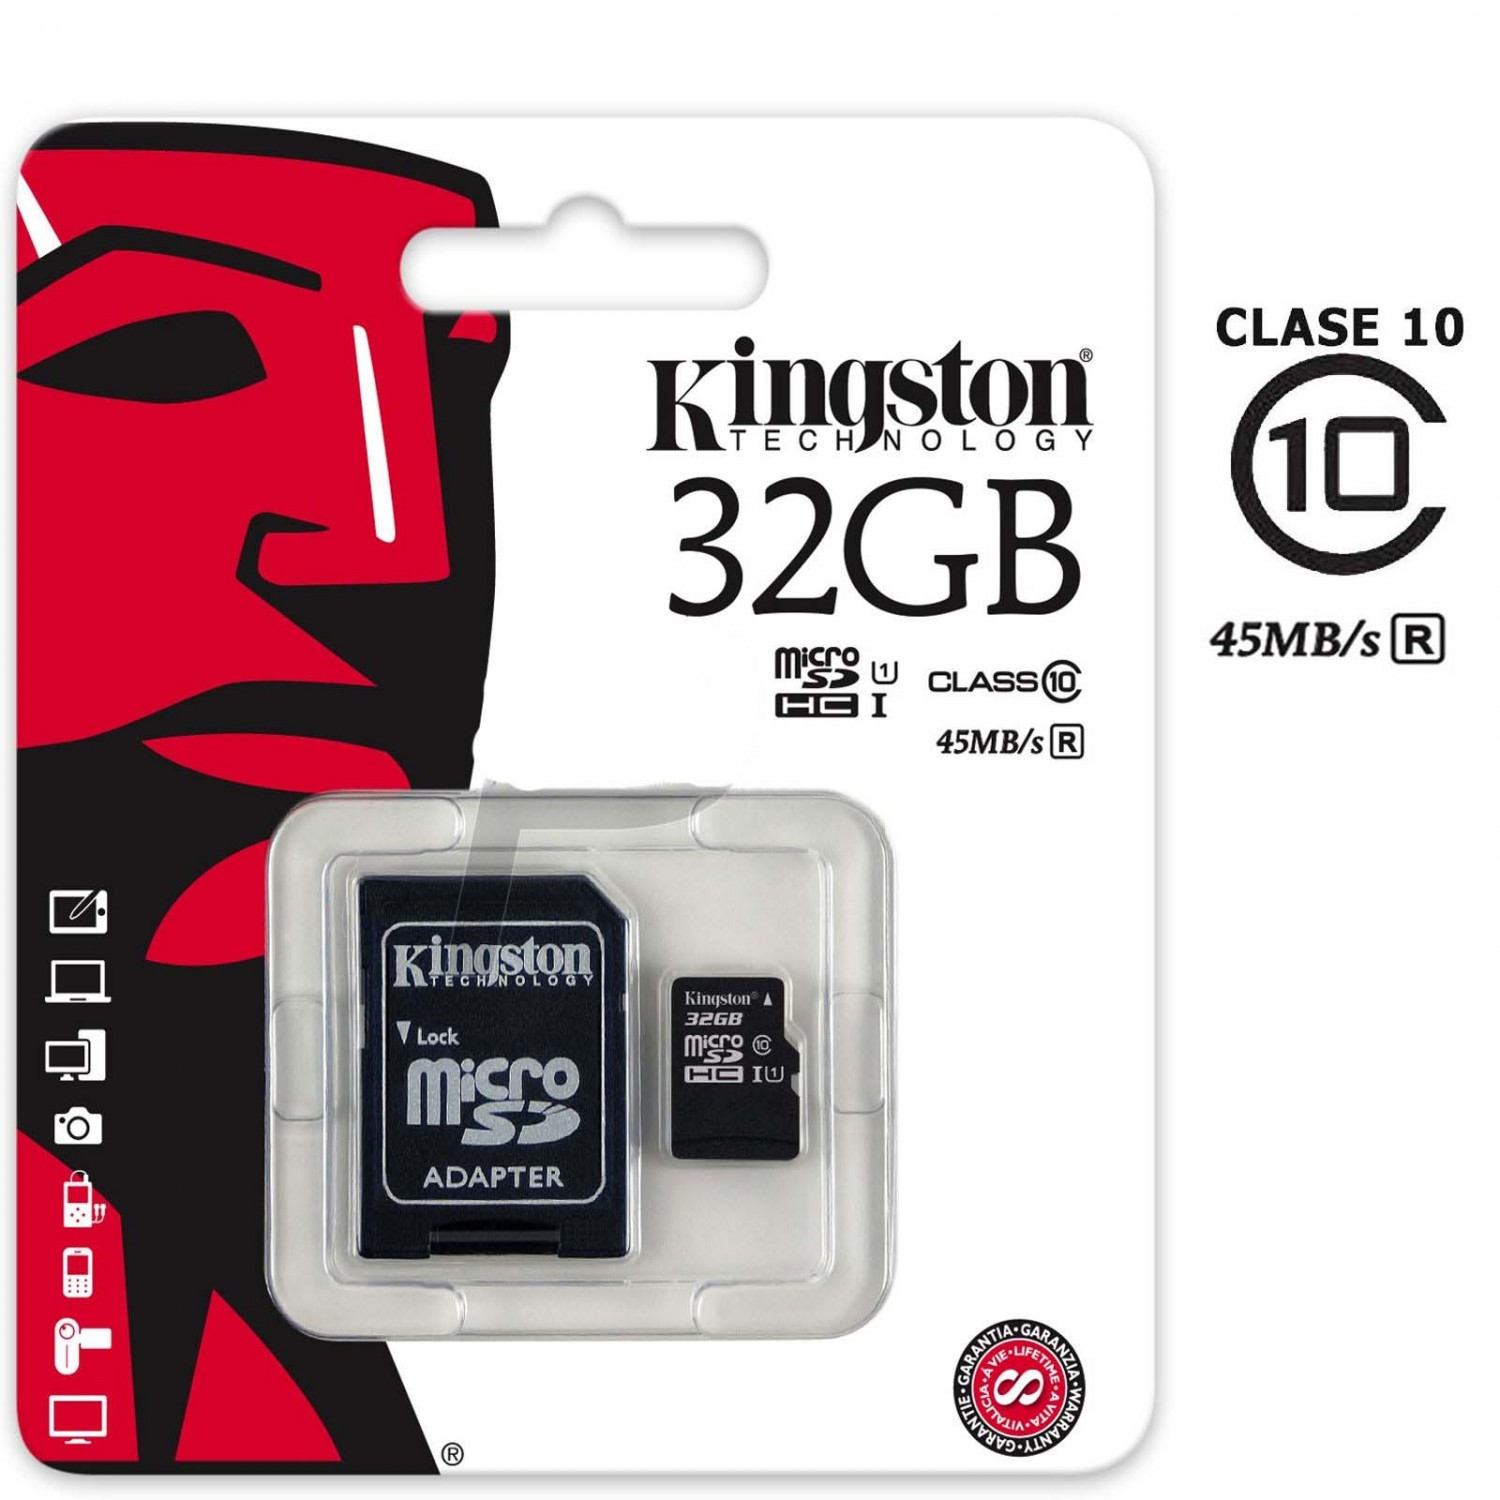 Memoria MICRO SD 32GB KINGSTON Clas.10 + Adaptador